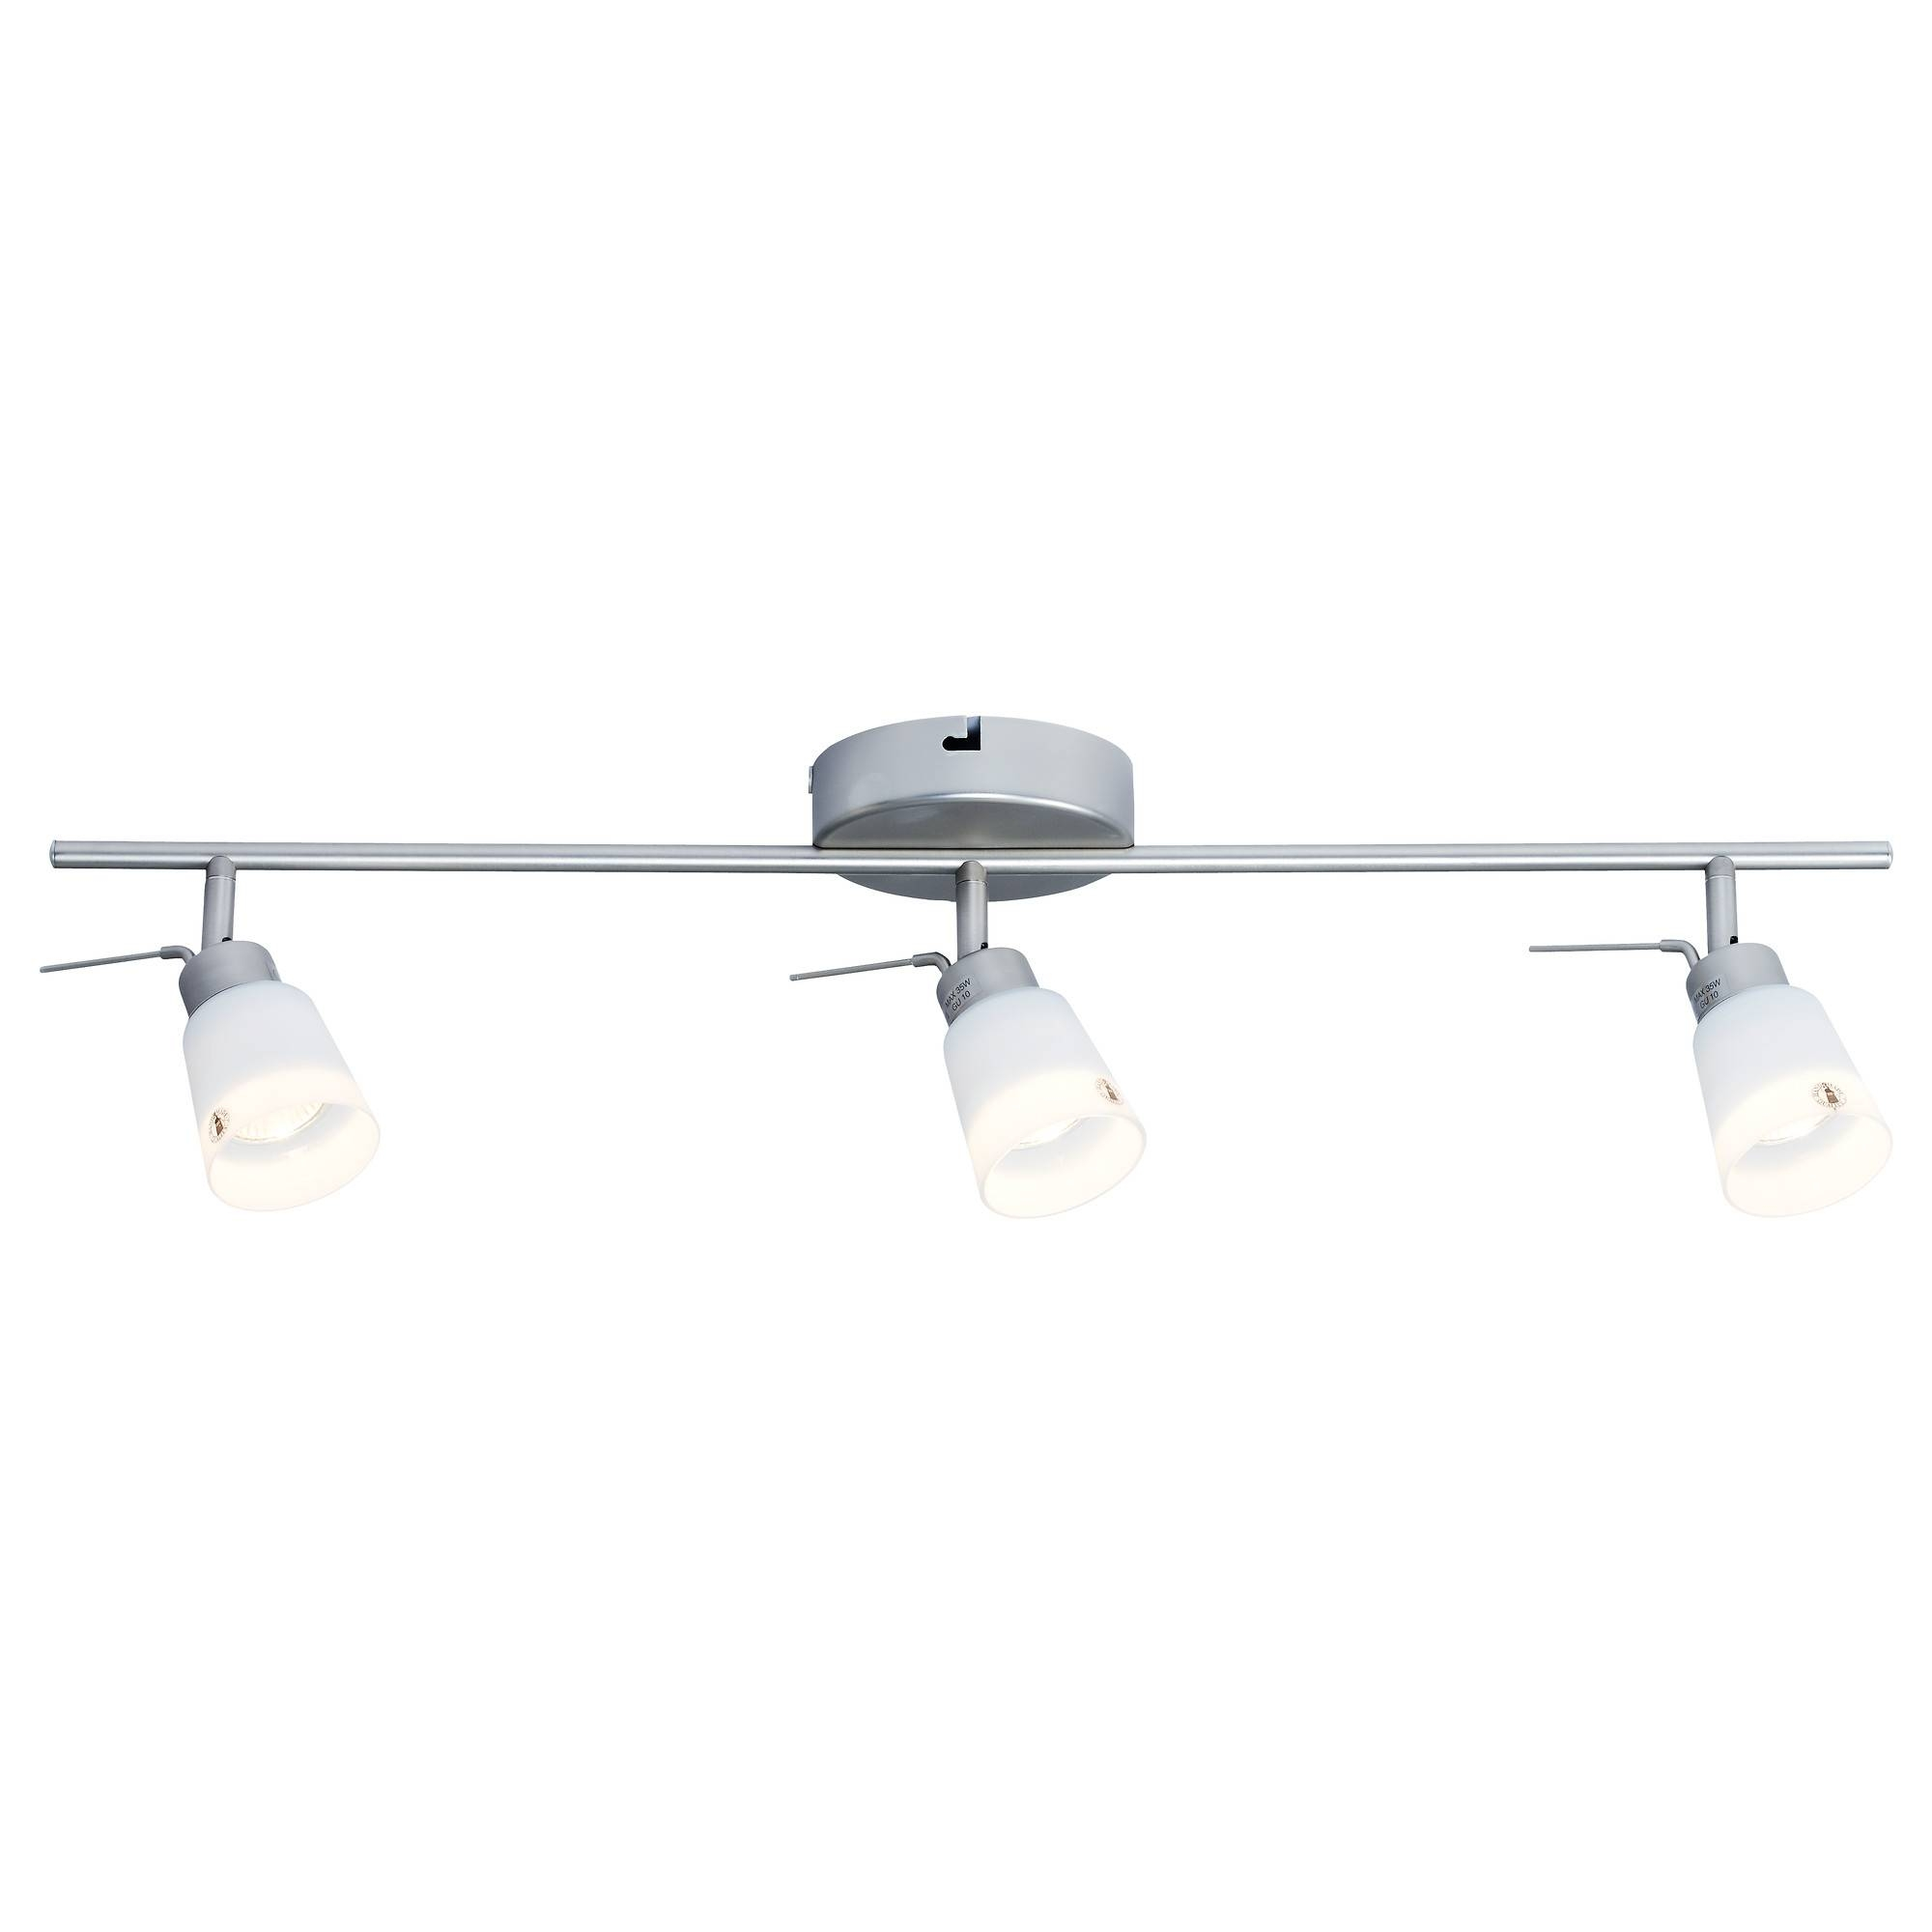 Basisk Ceiling Track, 3 Spotlights - Ikea with Ikea Ceiling Lights Fittings (Image 2 of 15)